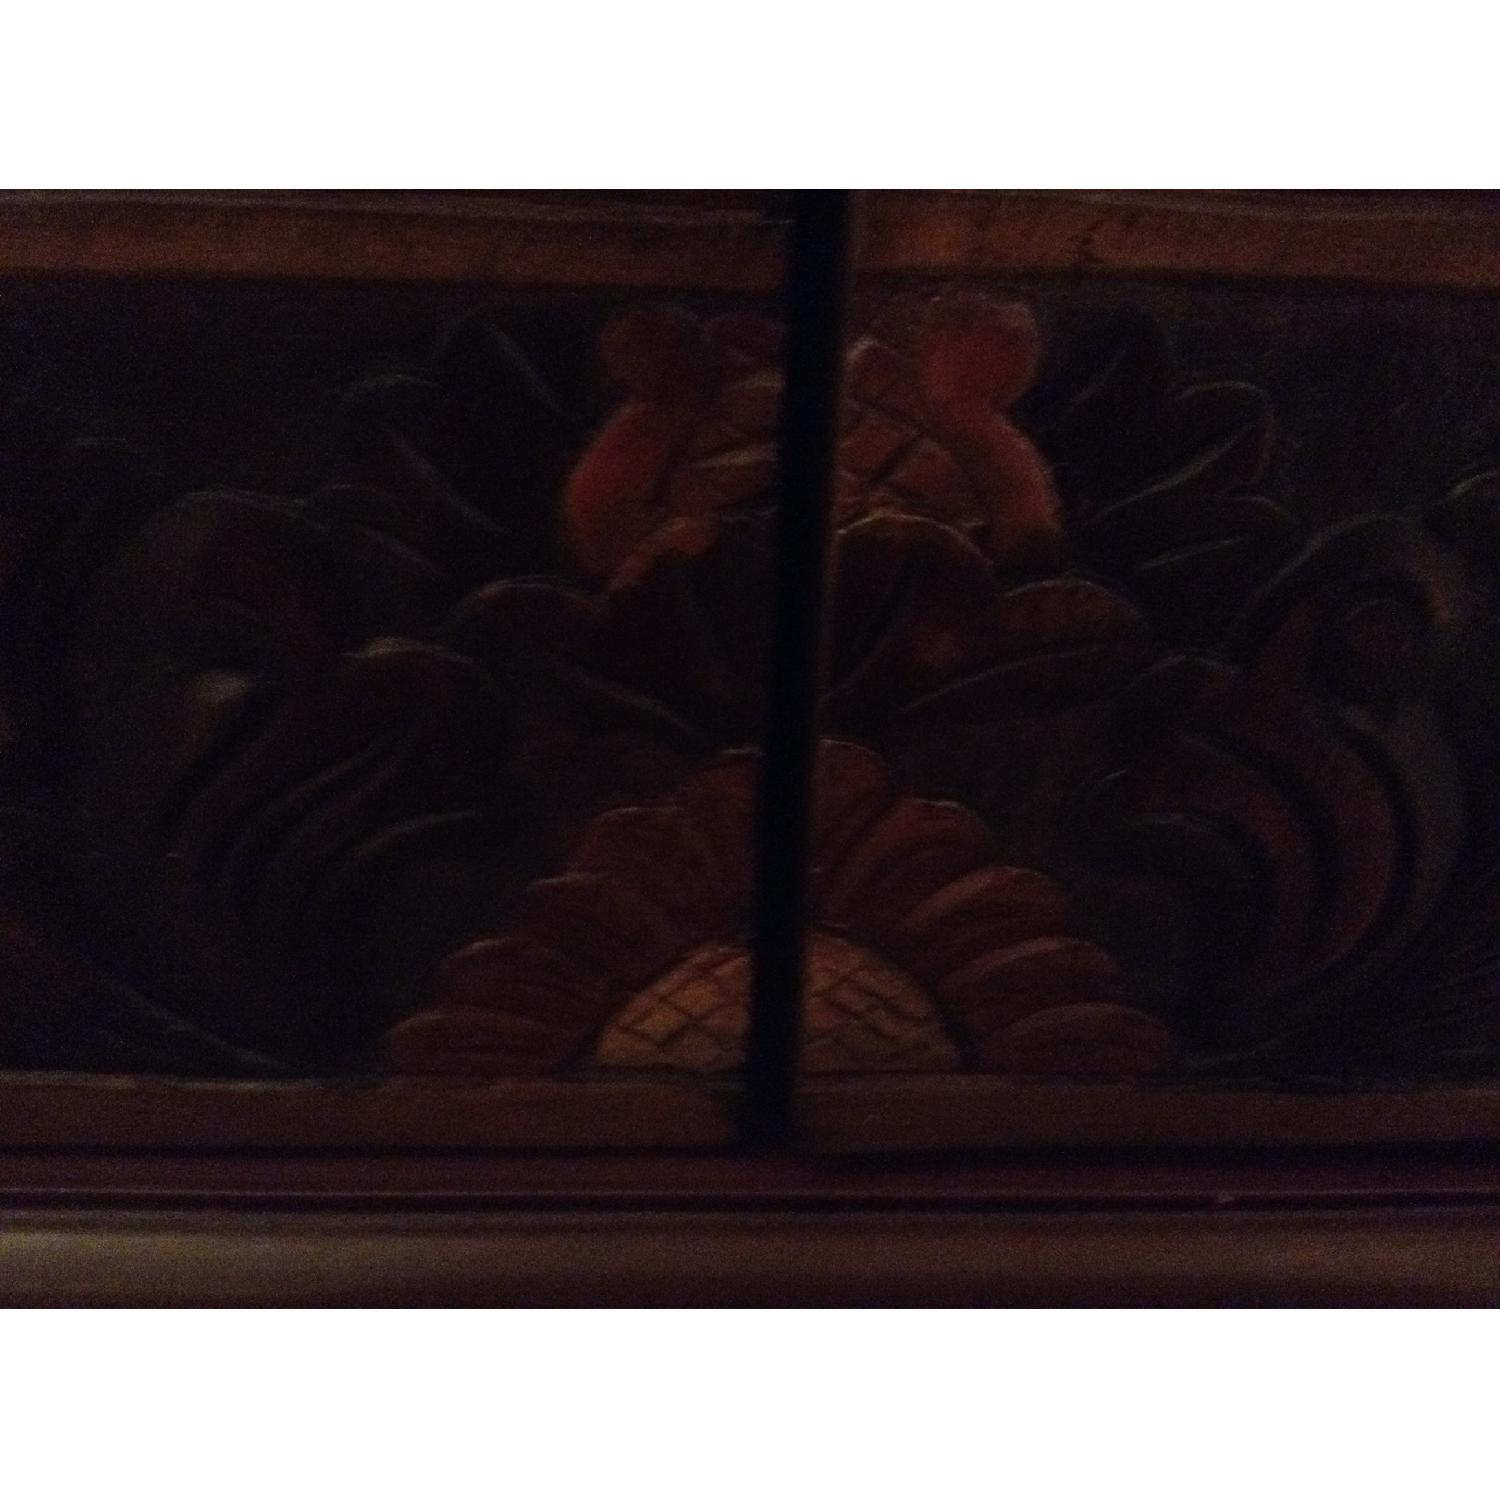 South East Asian Wall Mounted Cabinet - image-23